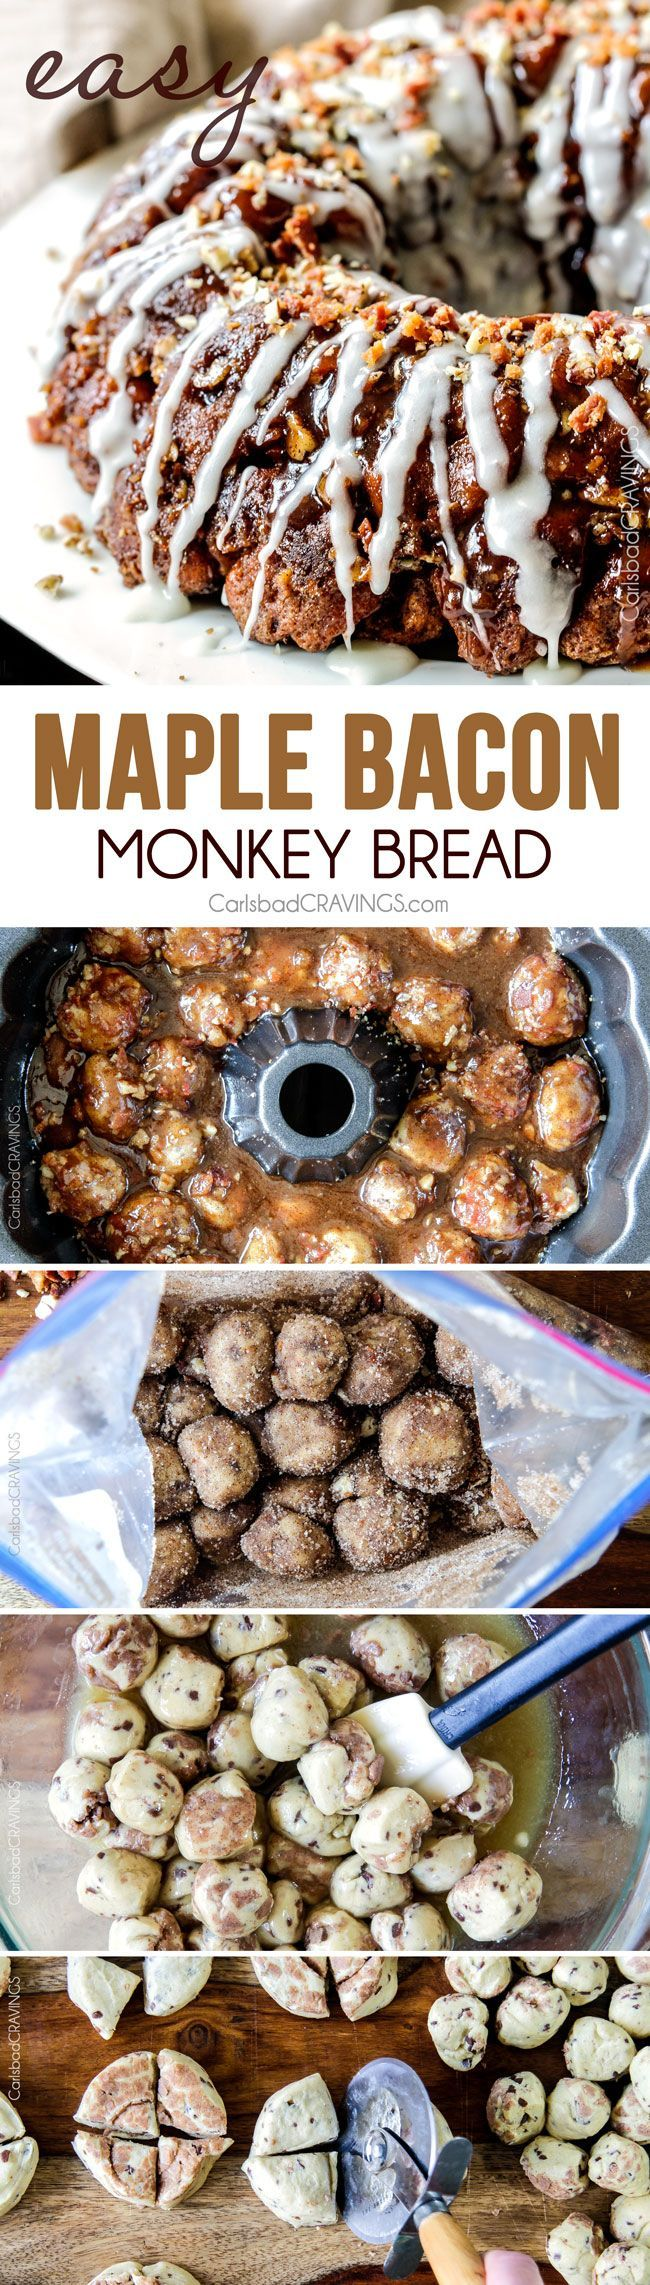 Maple Bacon Cinnamon Roll Monkey Bread made easy with refrigerated cinnamon rolls and made irresistible with maple crispy crumbled bacon, pecans and a maple caramel topping. The perfect special occasion breakfast, brunch or dessert!  #Christmas #Easter